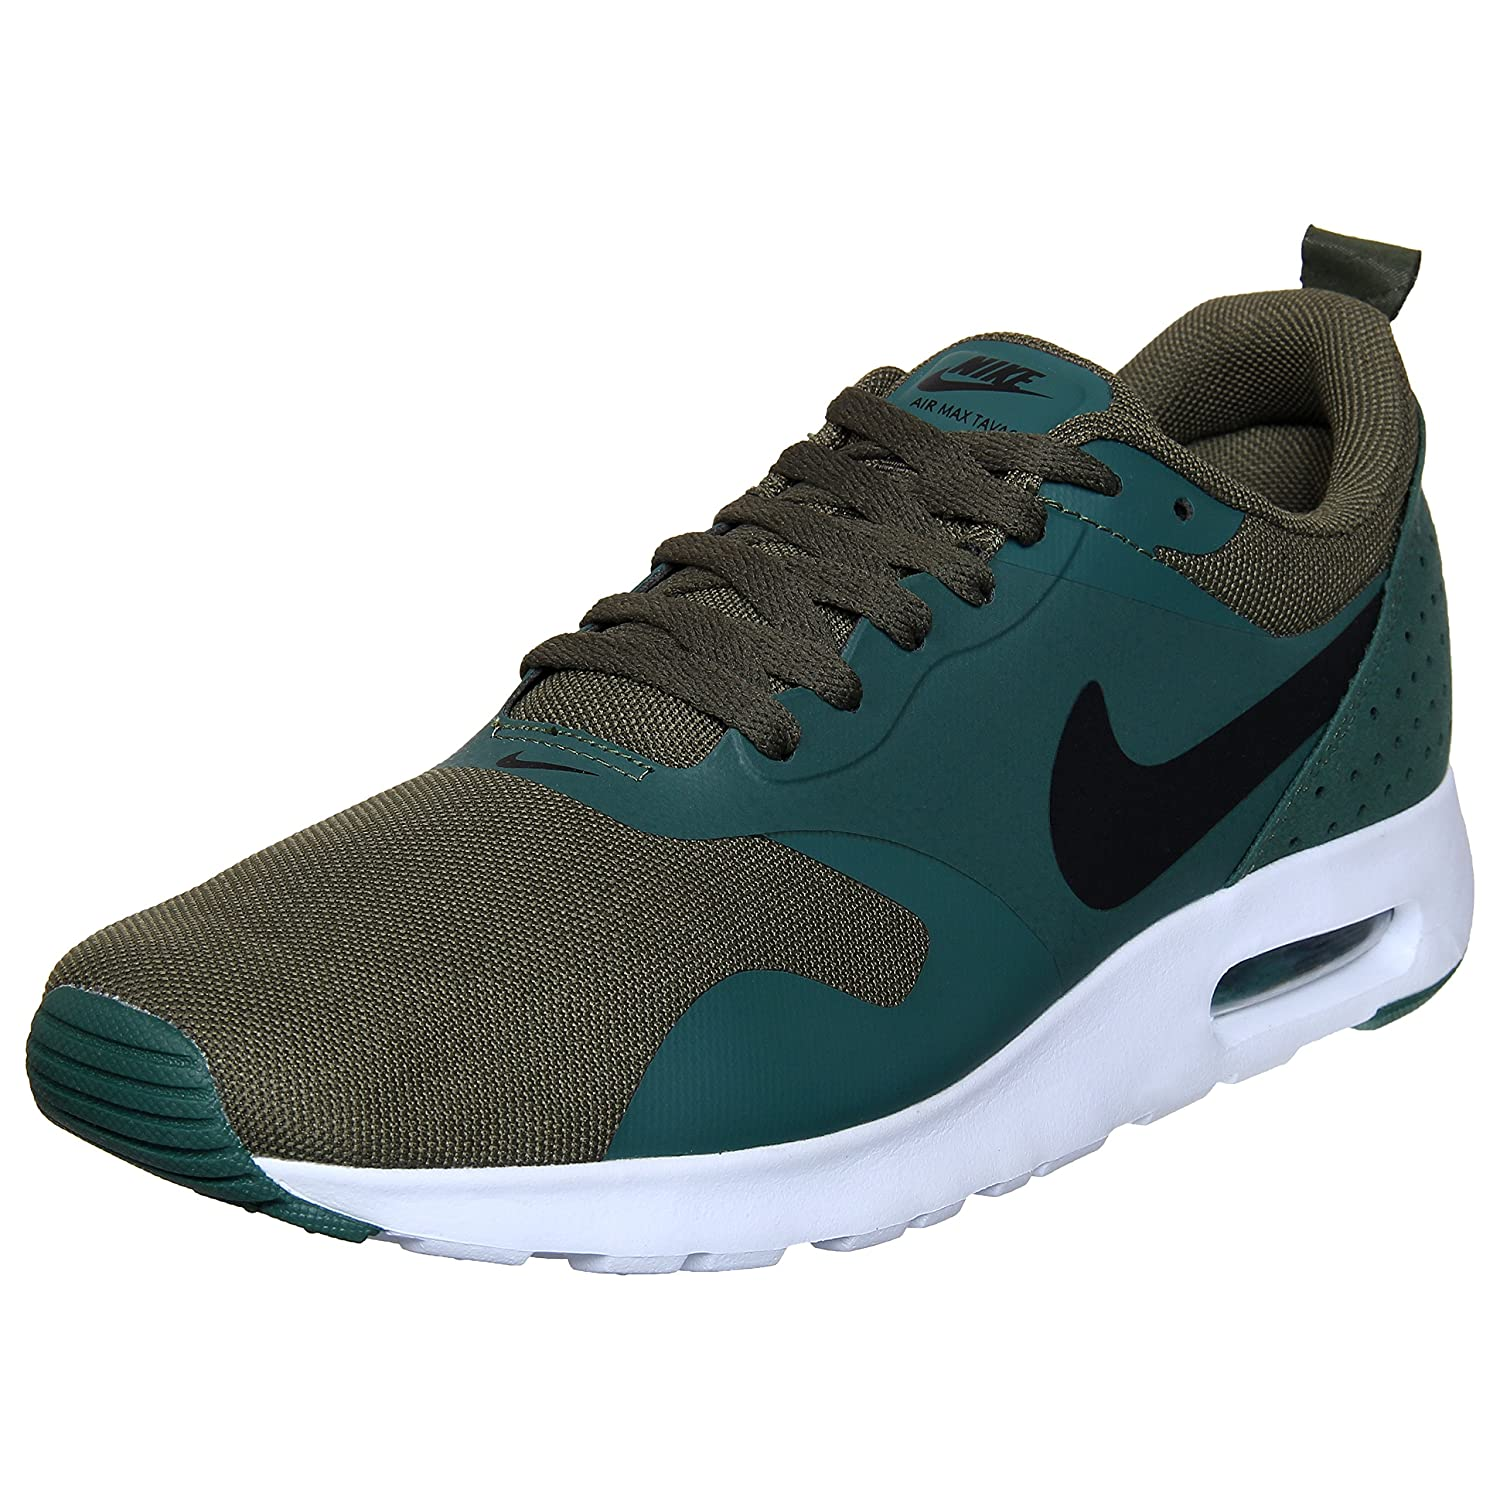 new style 17d92 edfc2 Nike AIR MAX TAVAS-10 Dark Green: Buy Online at Low Prices ...